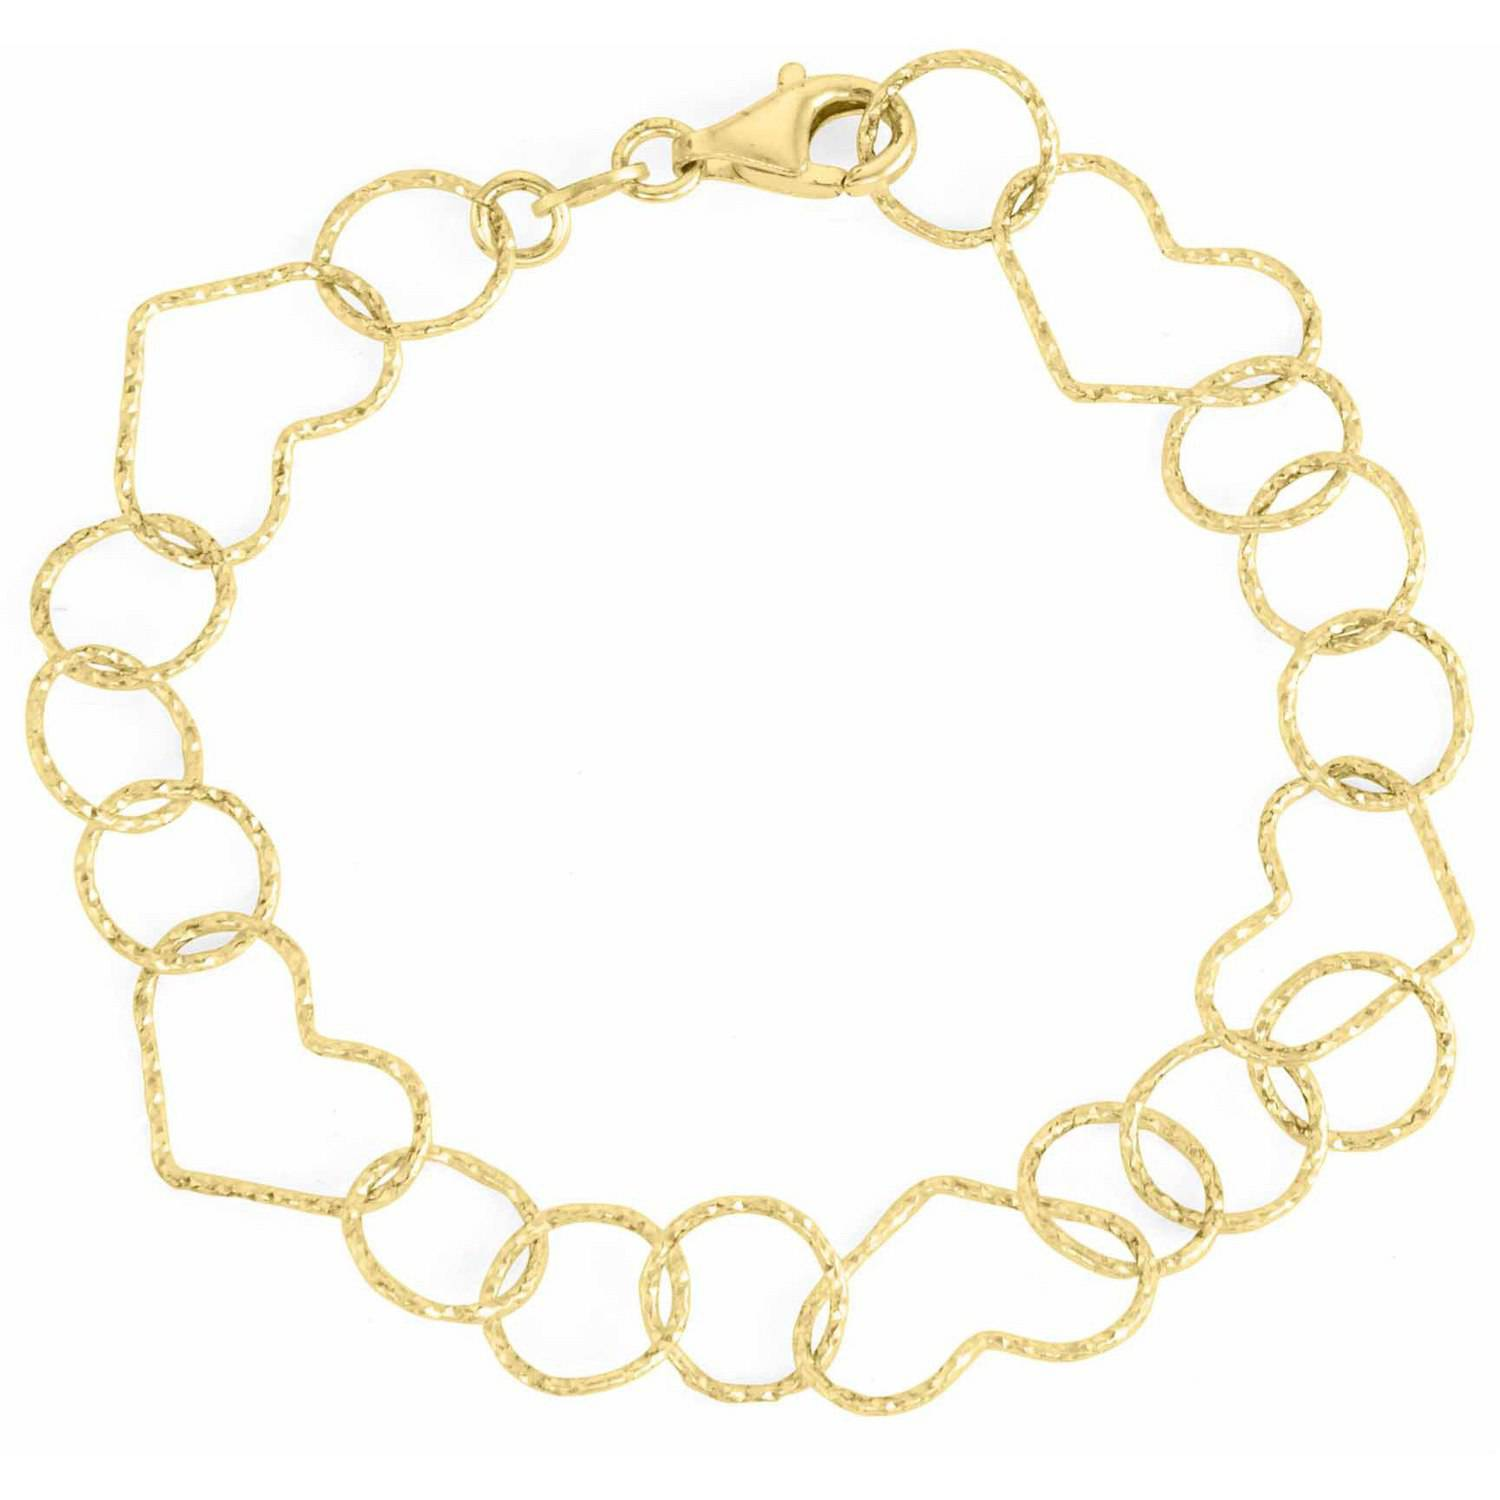 18kt Gold over Sterling Silver Diamond-Cut Open-Heart Link Bracelet, 7.5""